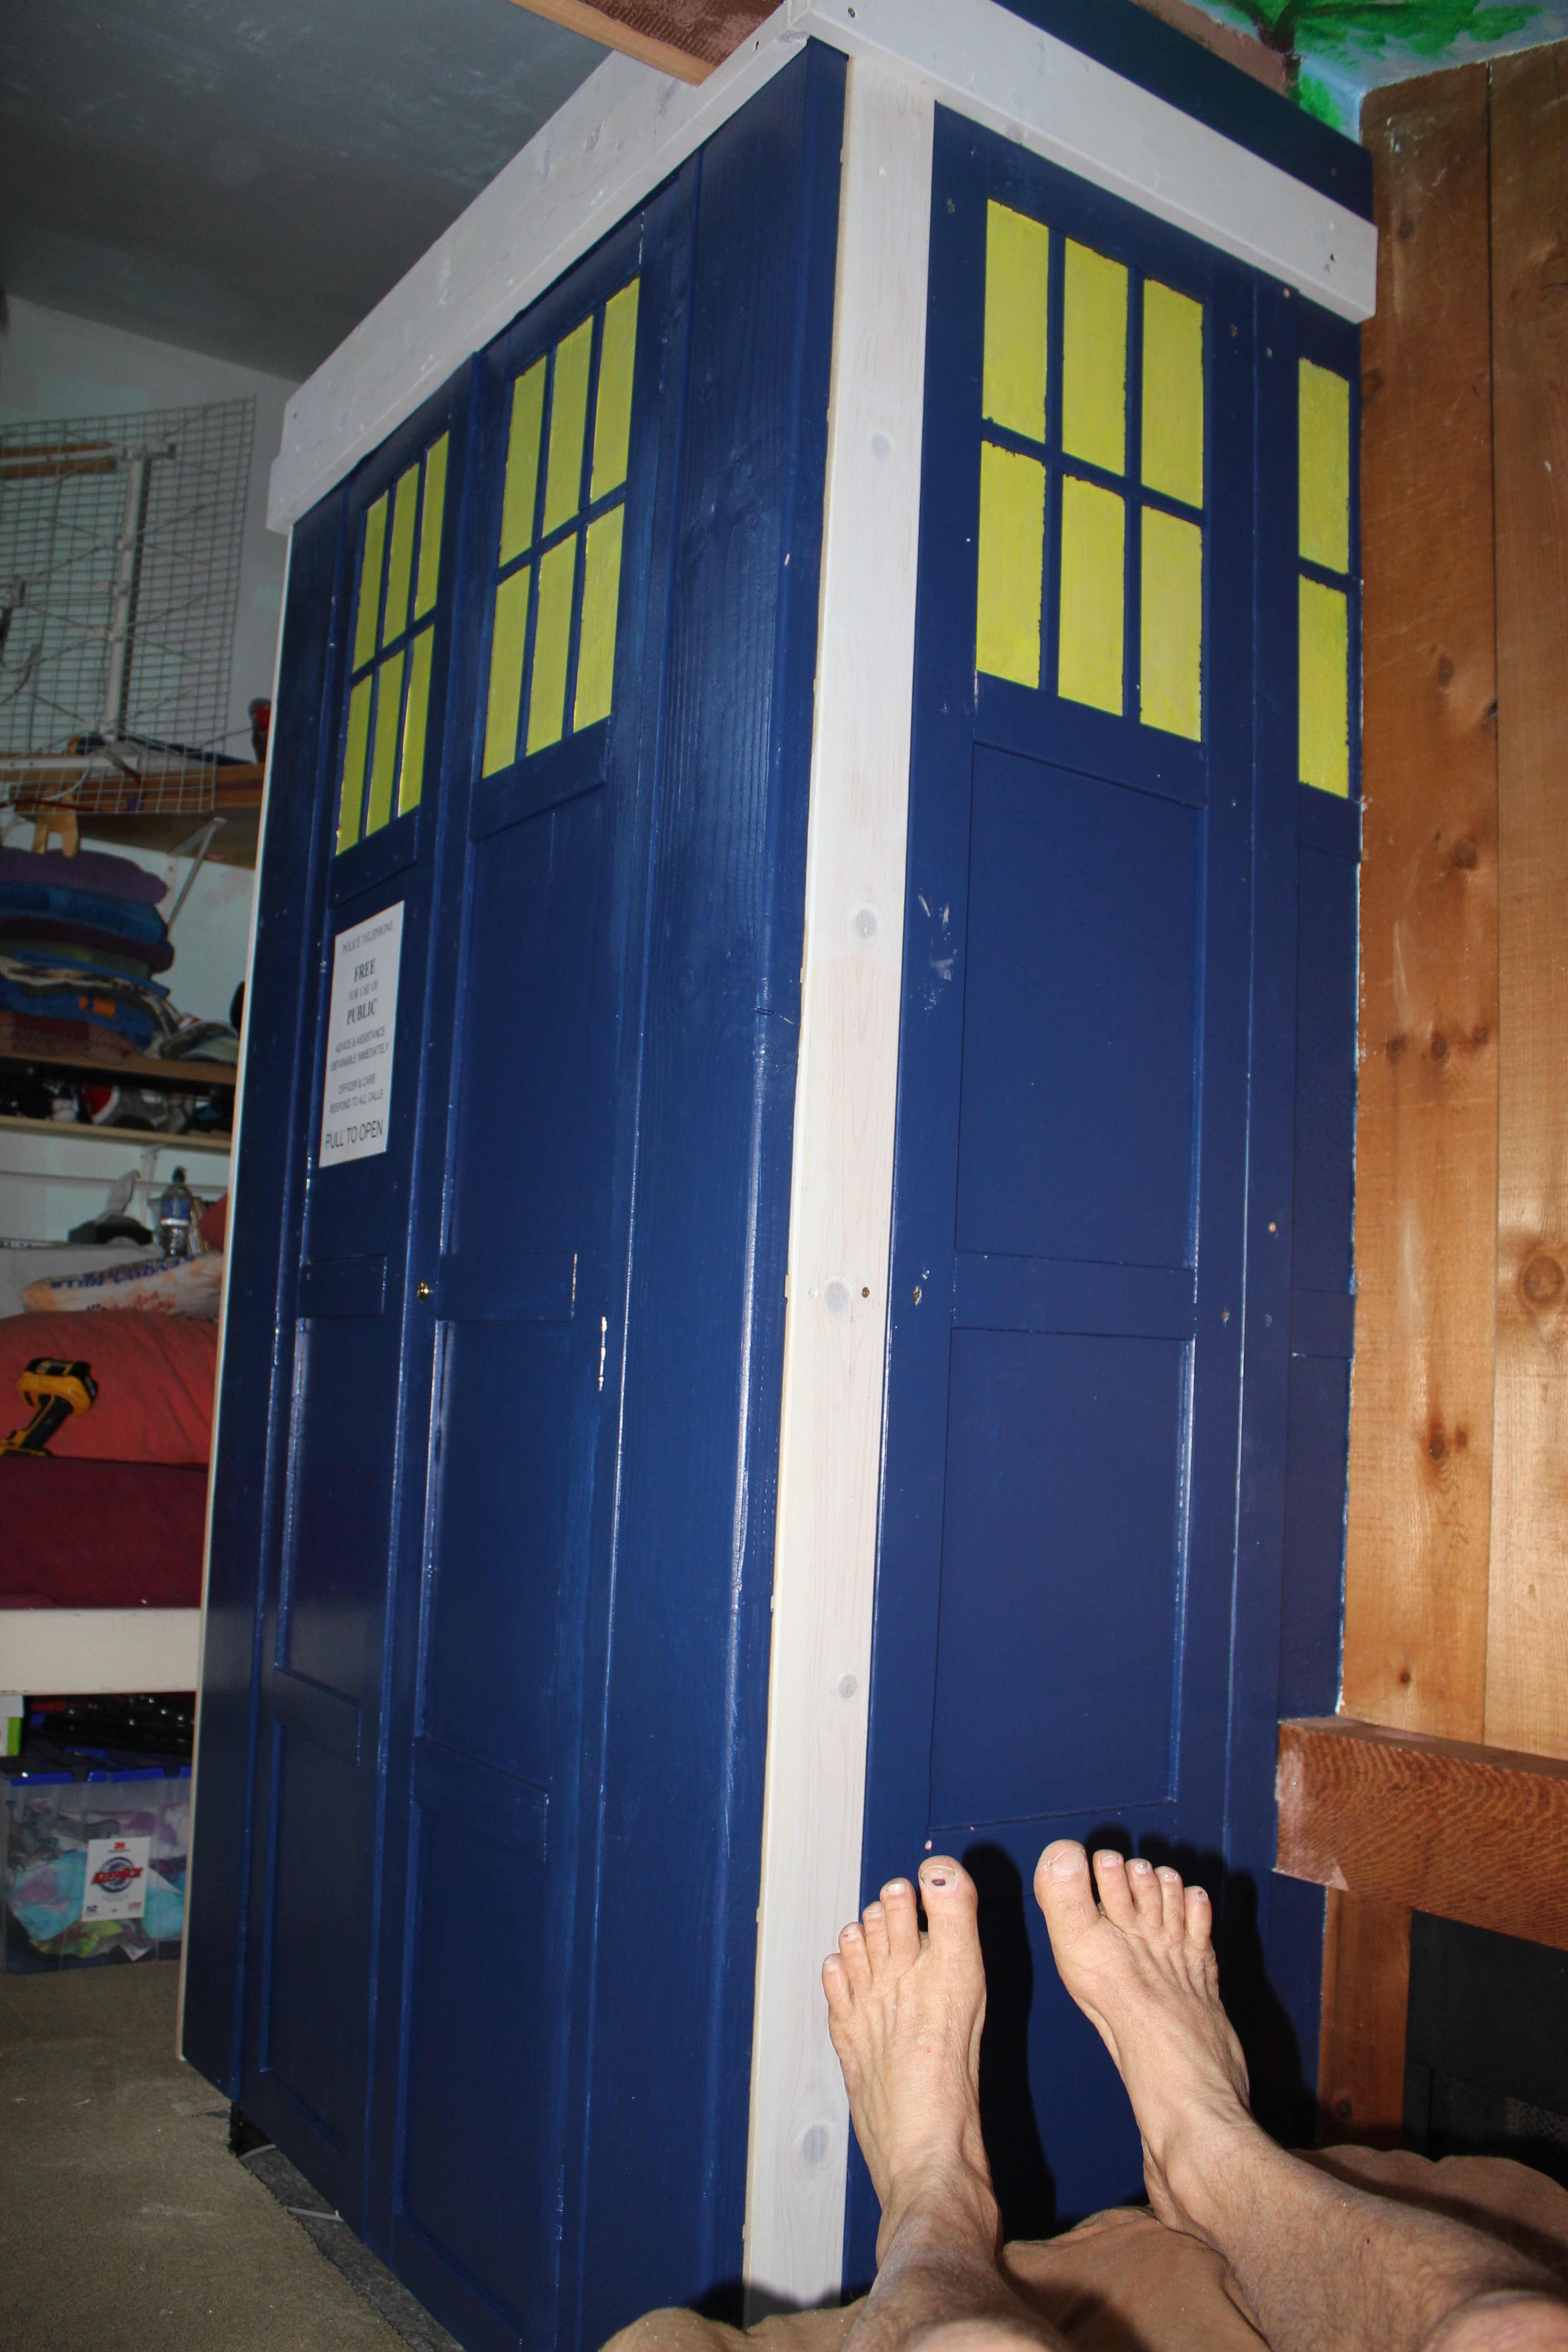 The TARDIS seems to have materialized partially inside the walls of our home.